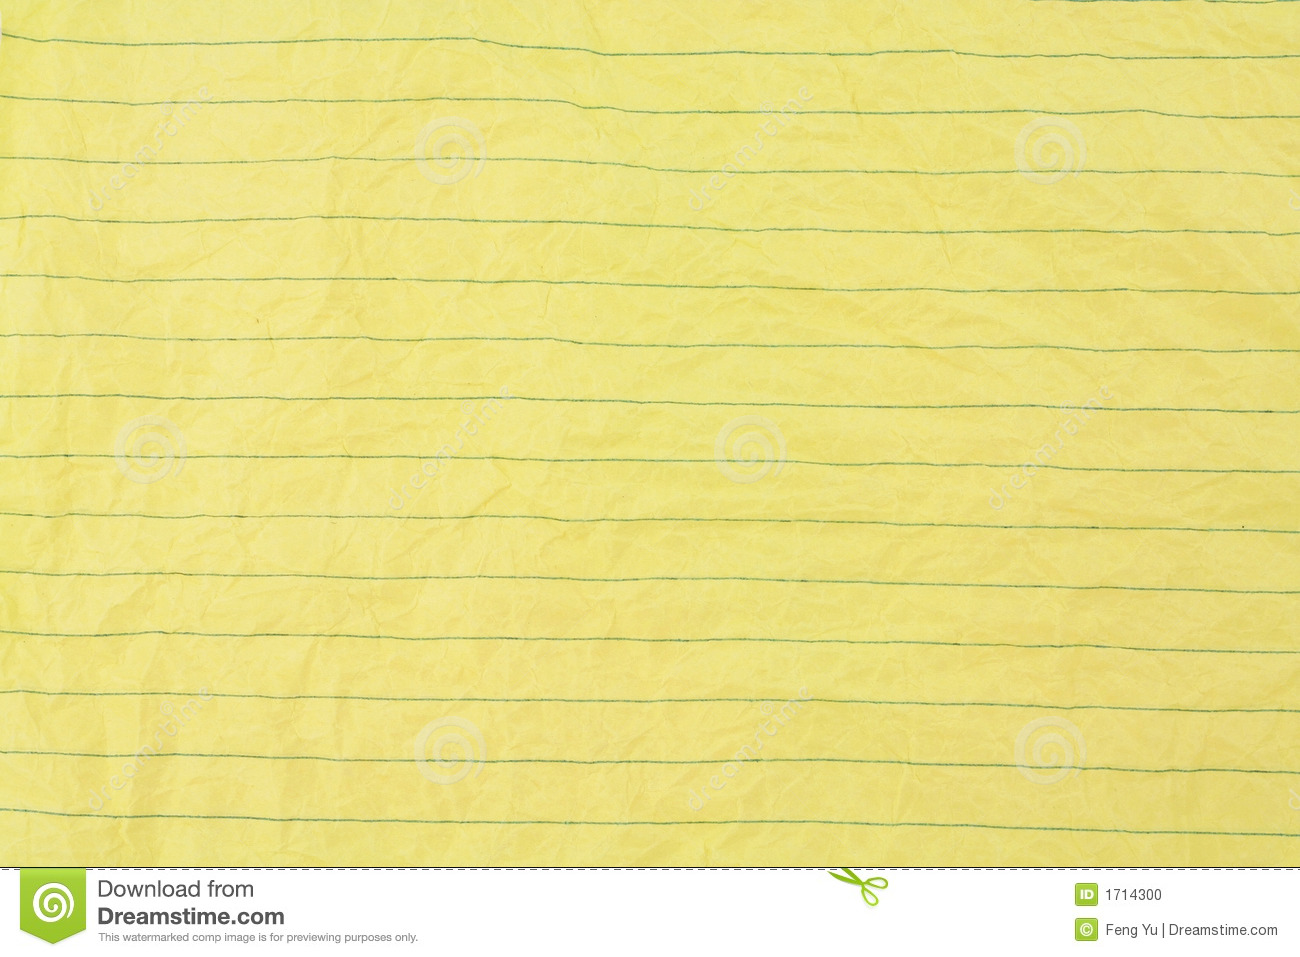 Crumpled Yellow Lined Paper Stock Photo - Image: 1714300